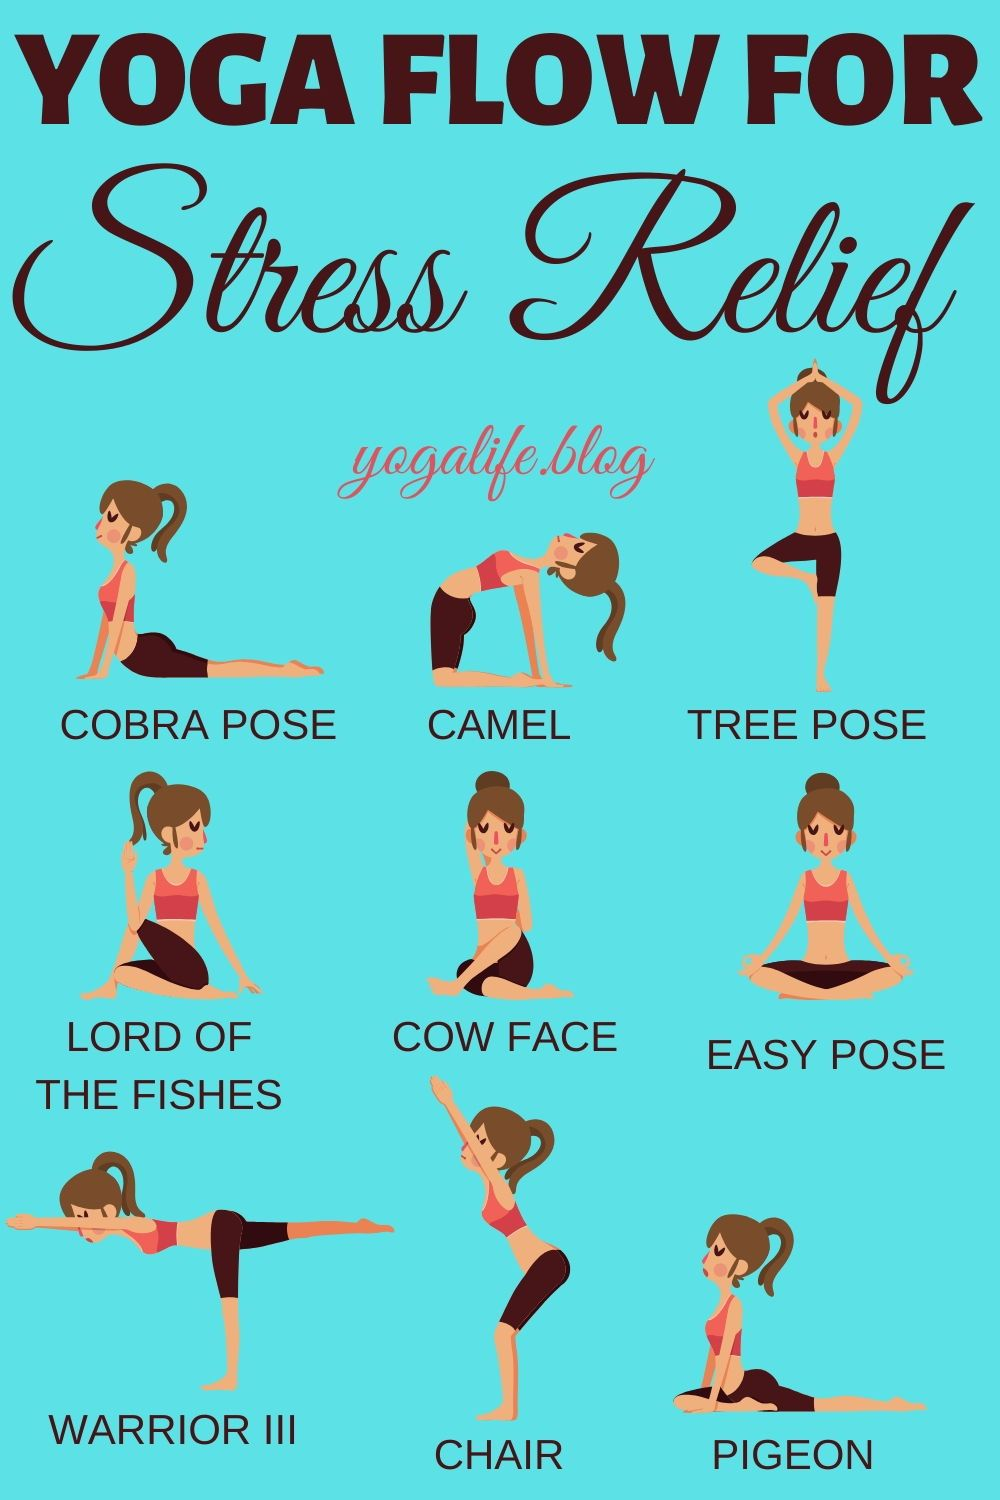 10 Easy Poses For Stress Relief Yoga Life Yoga For Stress Relief Yoga Sequence For Beginners Yoga Workout Routine